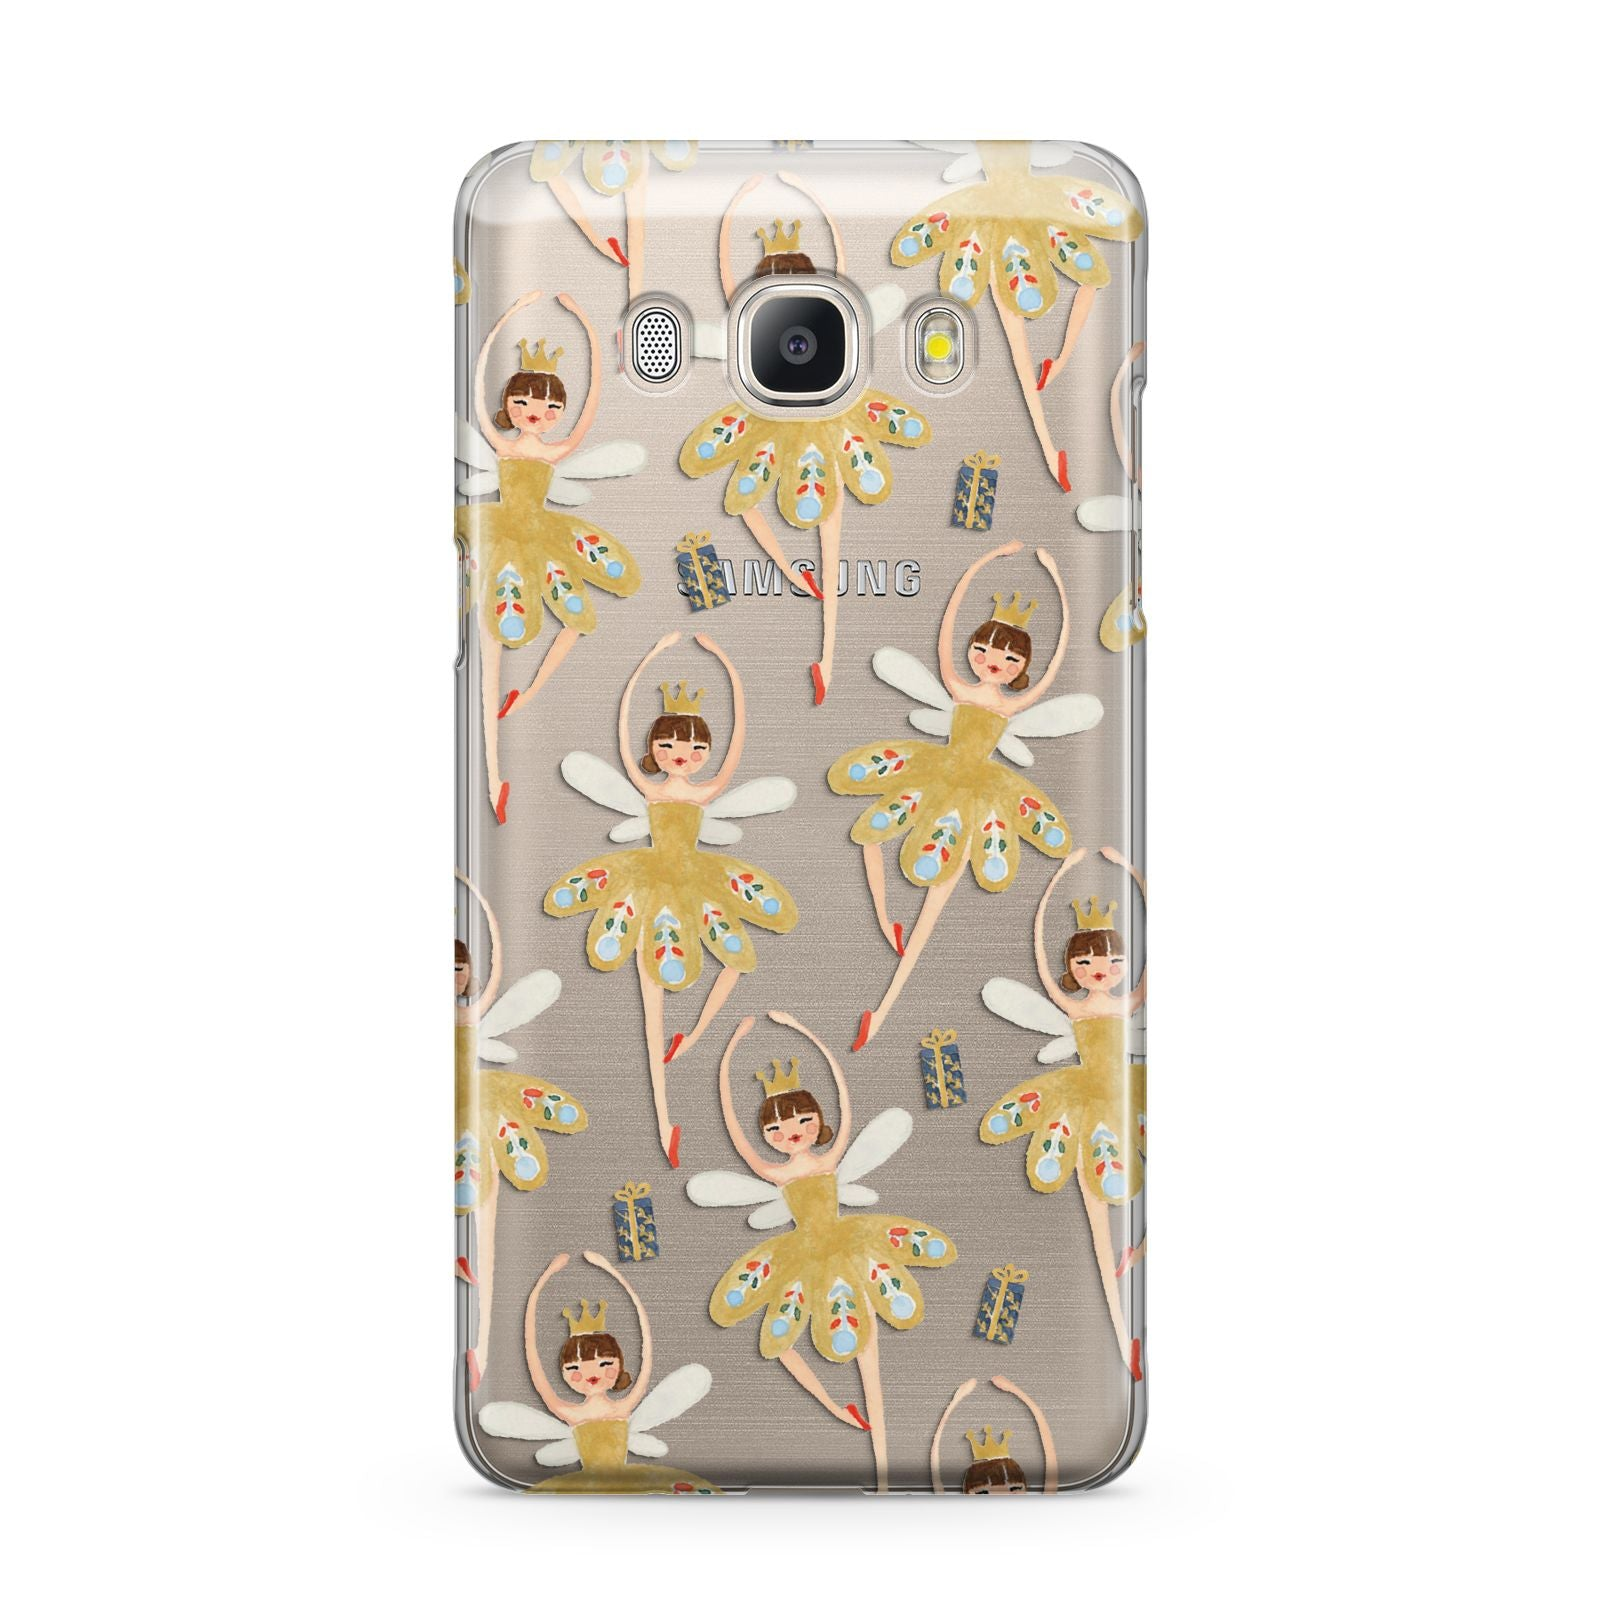 Dancing ballerina princess Samsung Galaxy J5 2016 Case